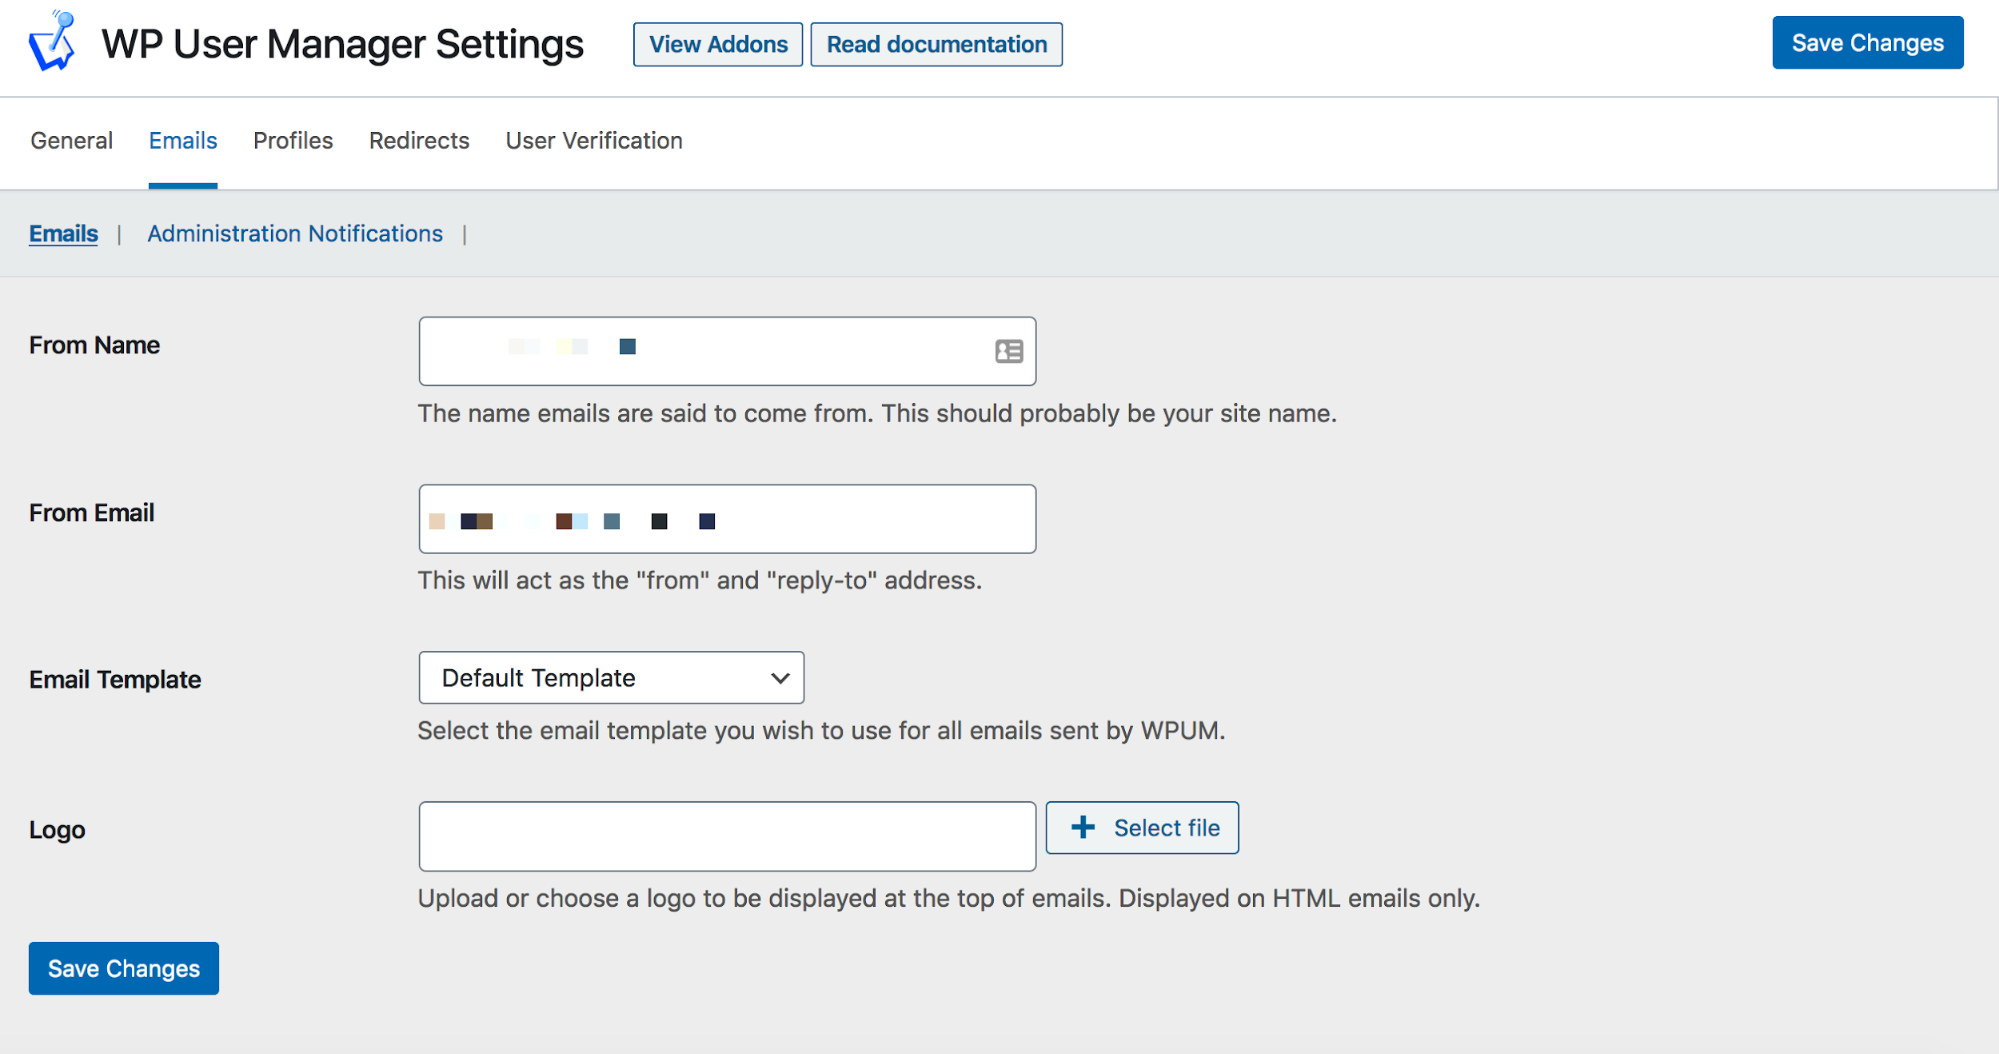 WP User Manager Email Settings